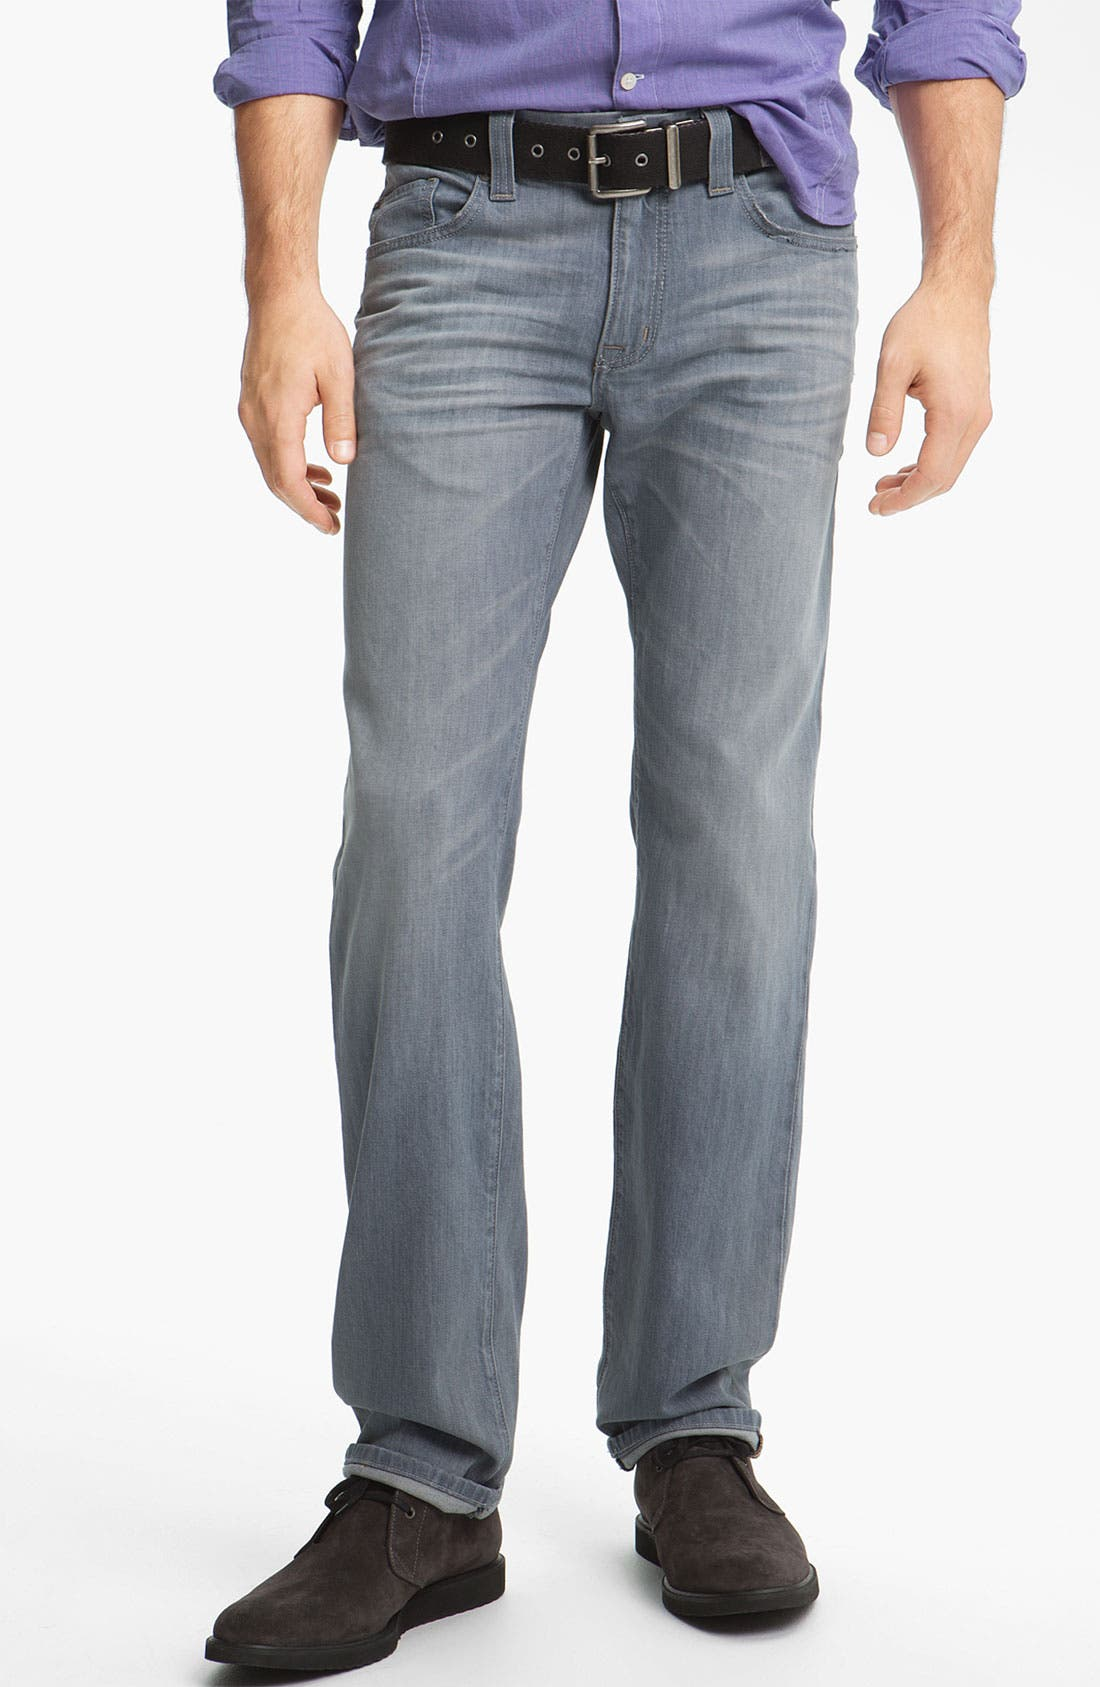 Alternate Image 1 Selected - Fidelity Denim 'Impala' Straight Leg Jeans (Voodoo Ghost)